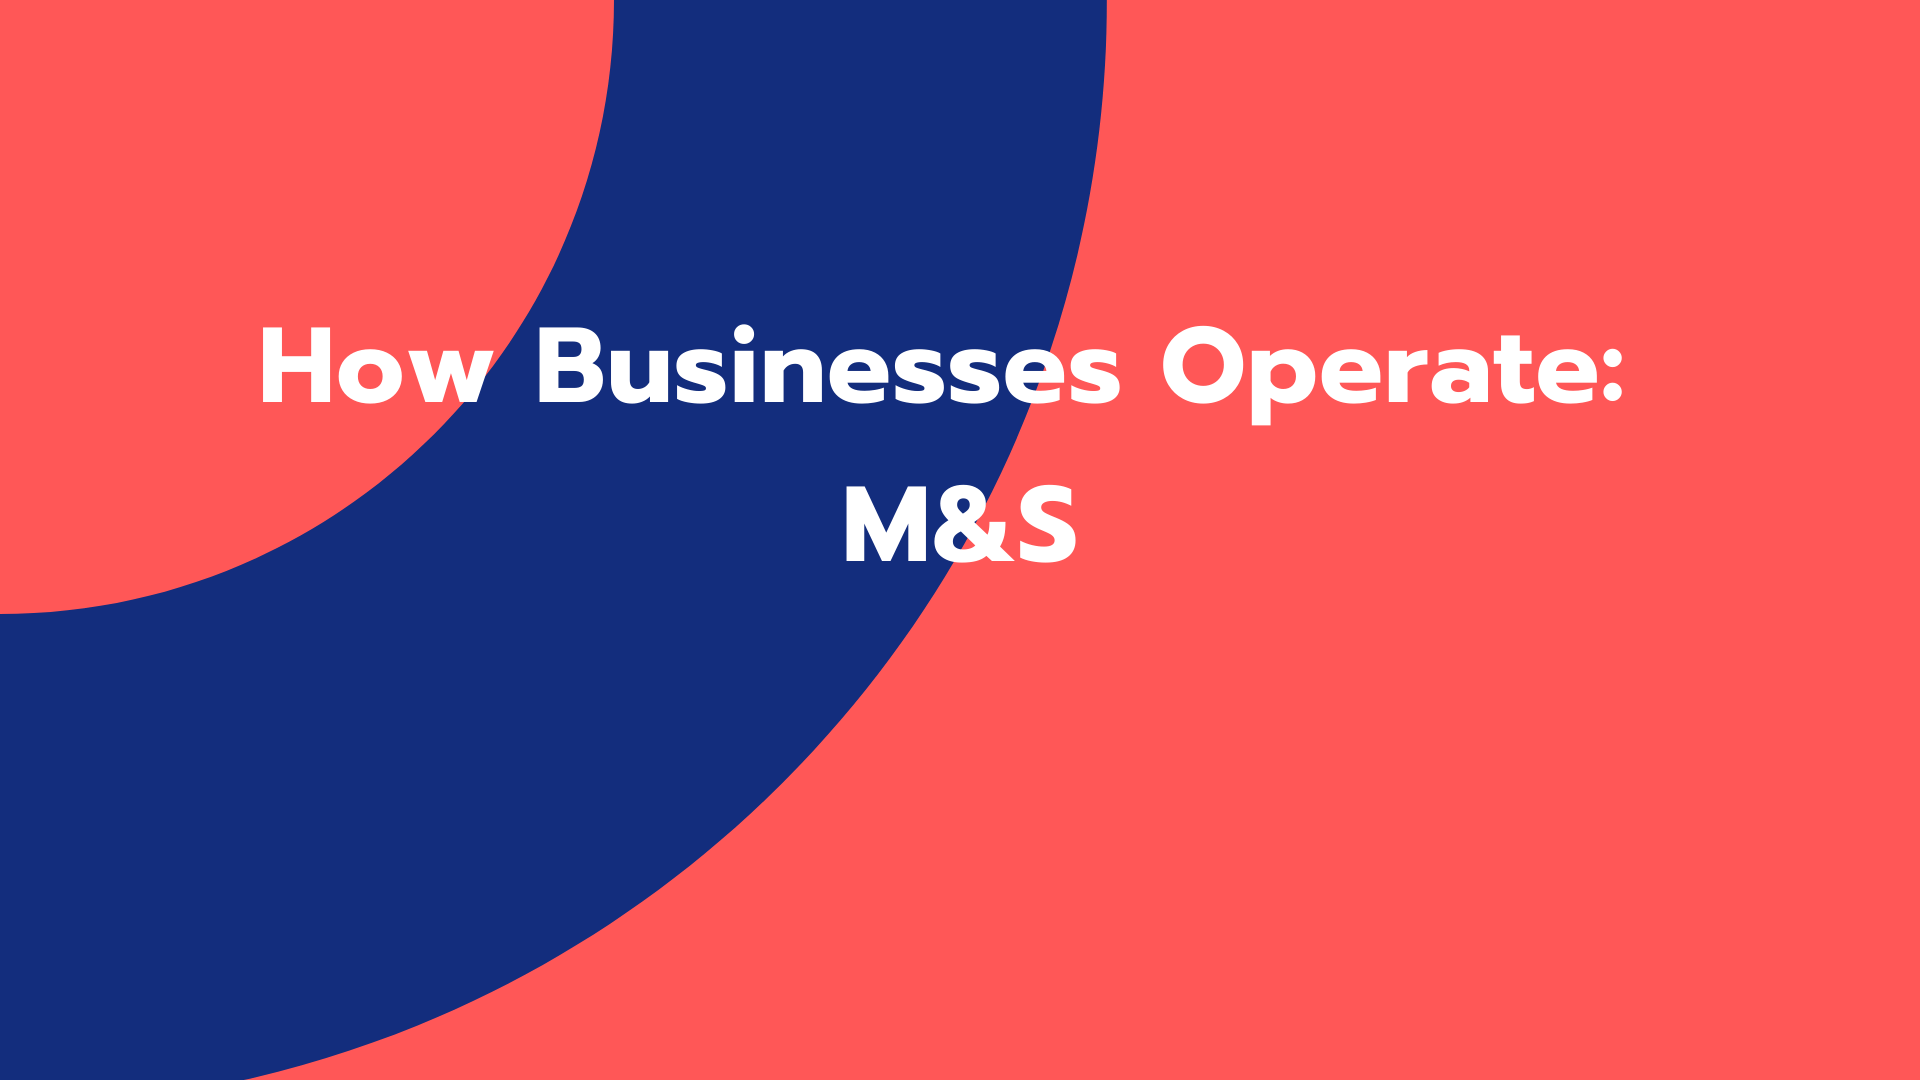 How Businesses Operate: M&S